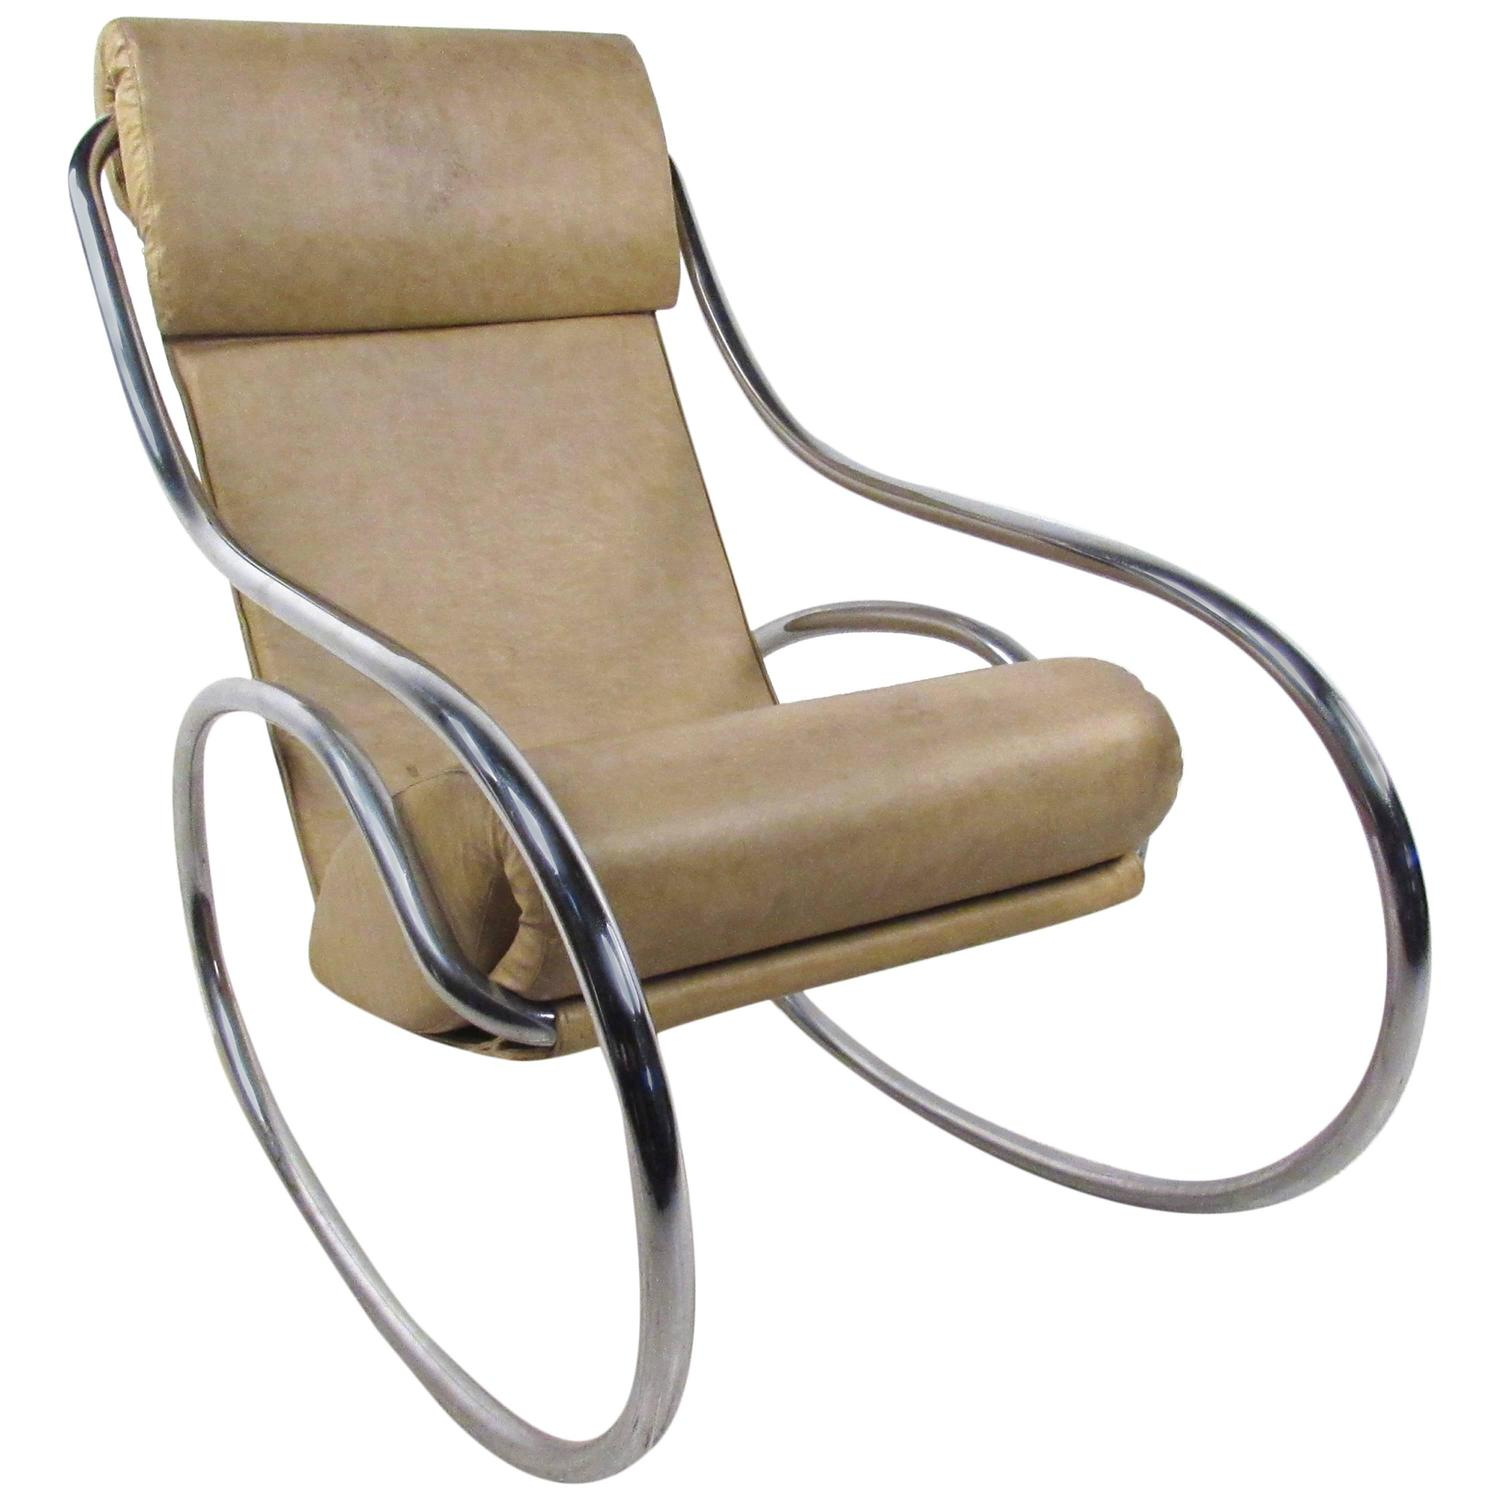 mid century modern tubular chrome rocking chair for sale at 1stdibs. Black Bedroom Furniture Sets. Home Design Ideas